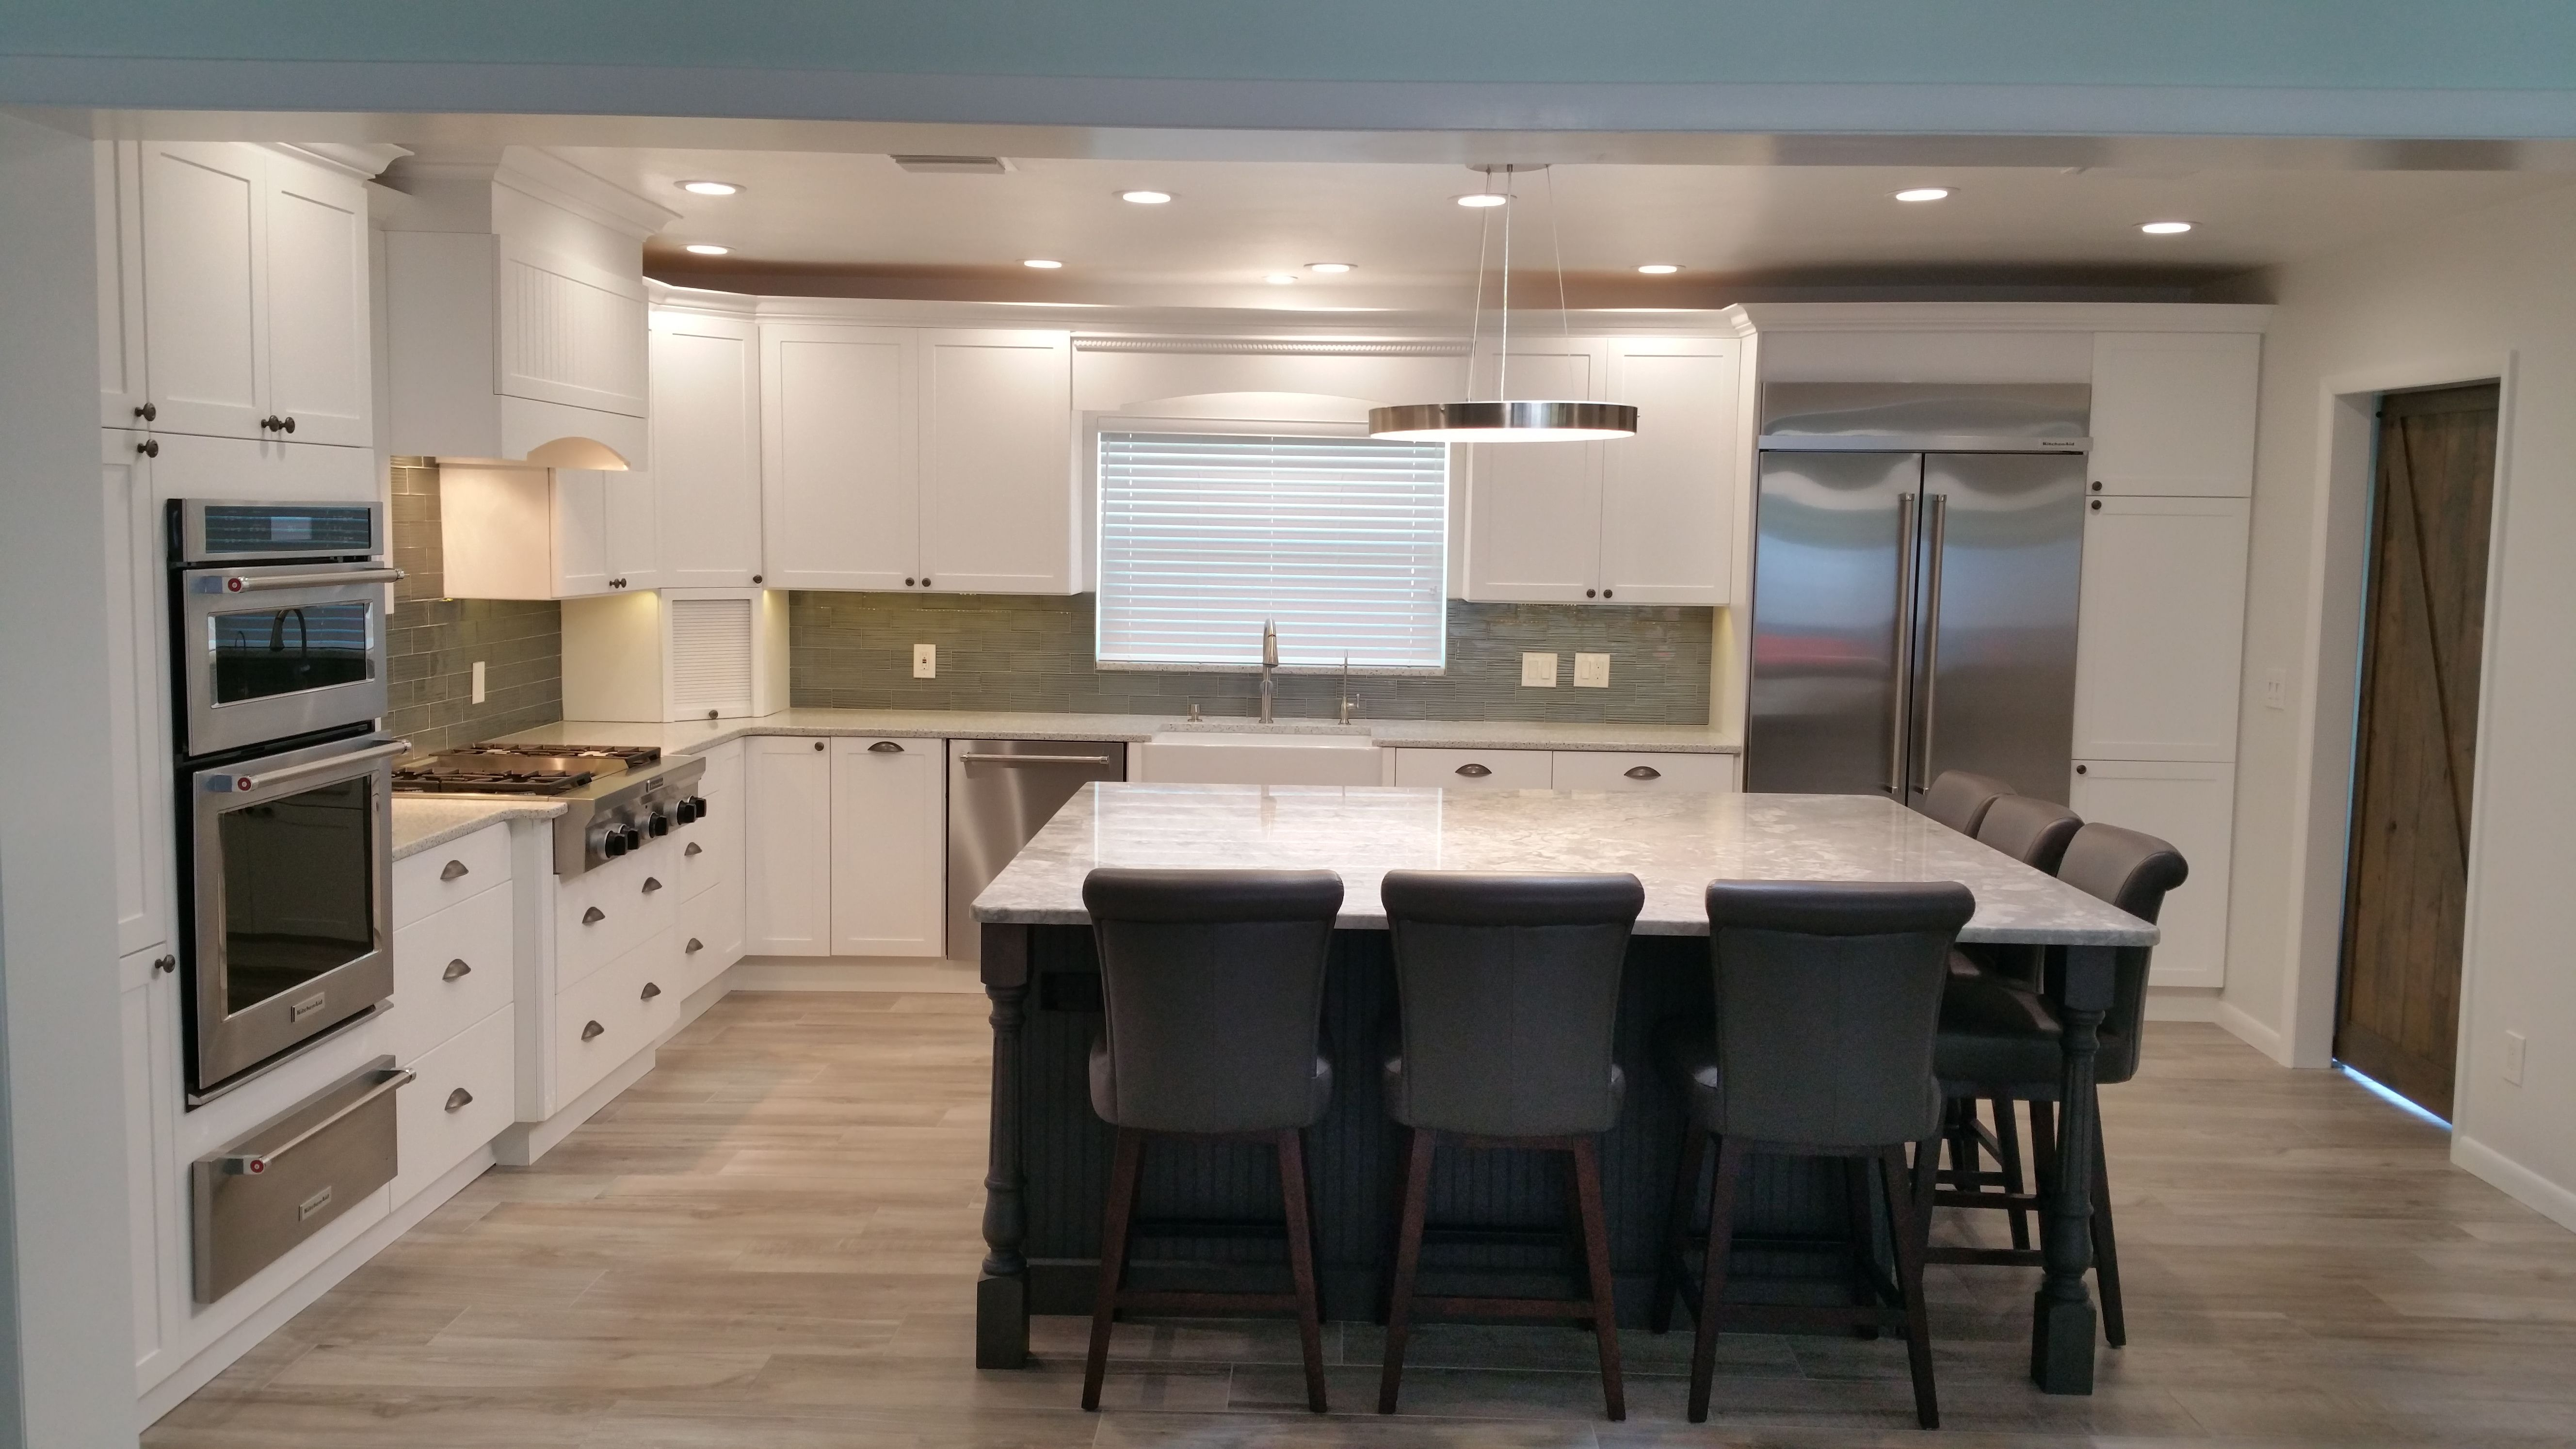 Luxor Pearl White Shaker Style Cabinets And Massive Thunder Grey Island With Marble Top And Swarovsk Shaker Style Cabinets Swarovski Crystal Chandelier Cabinet